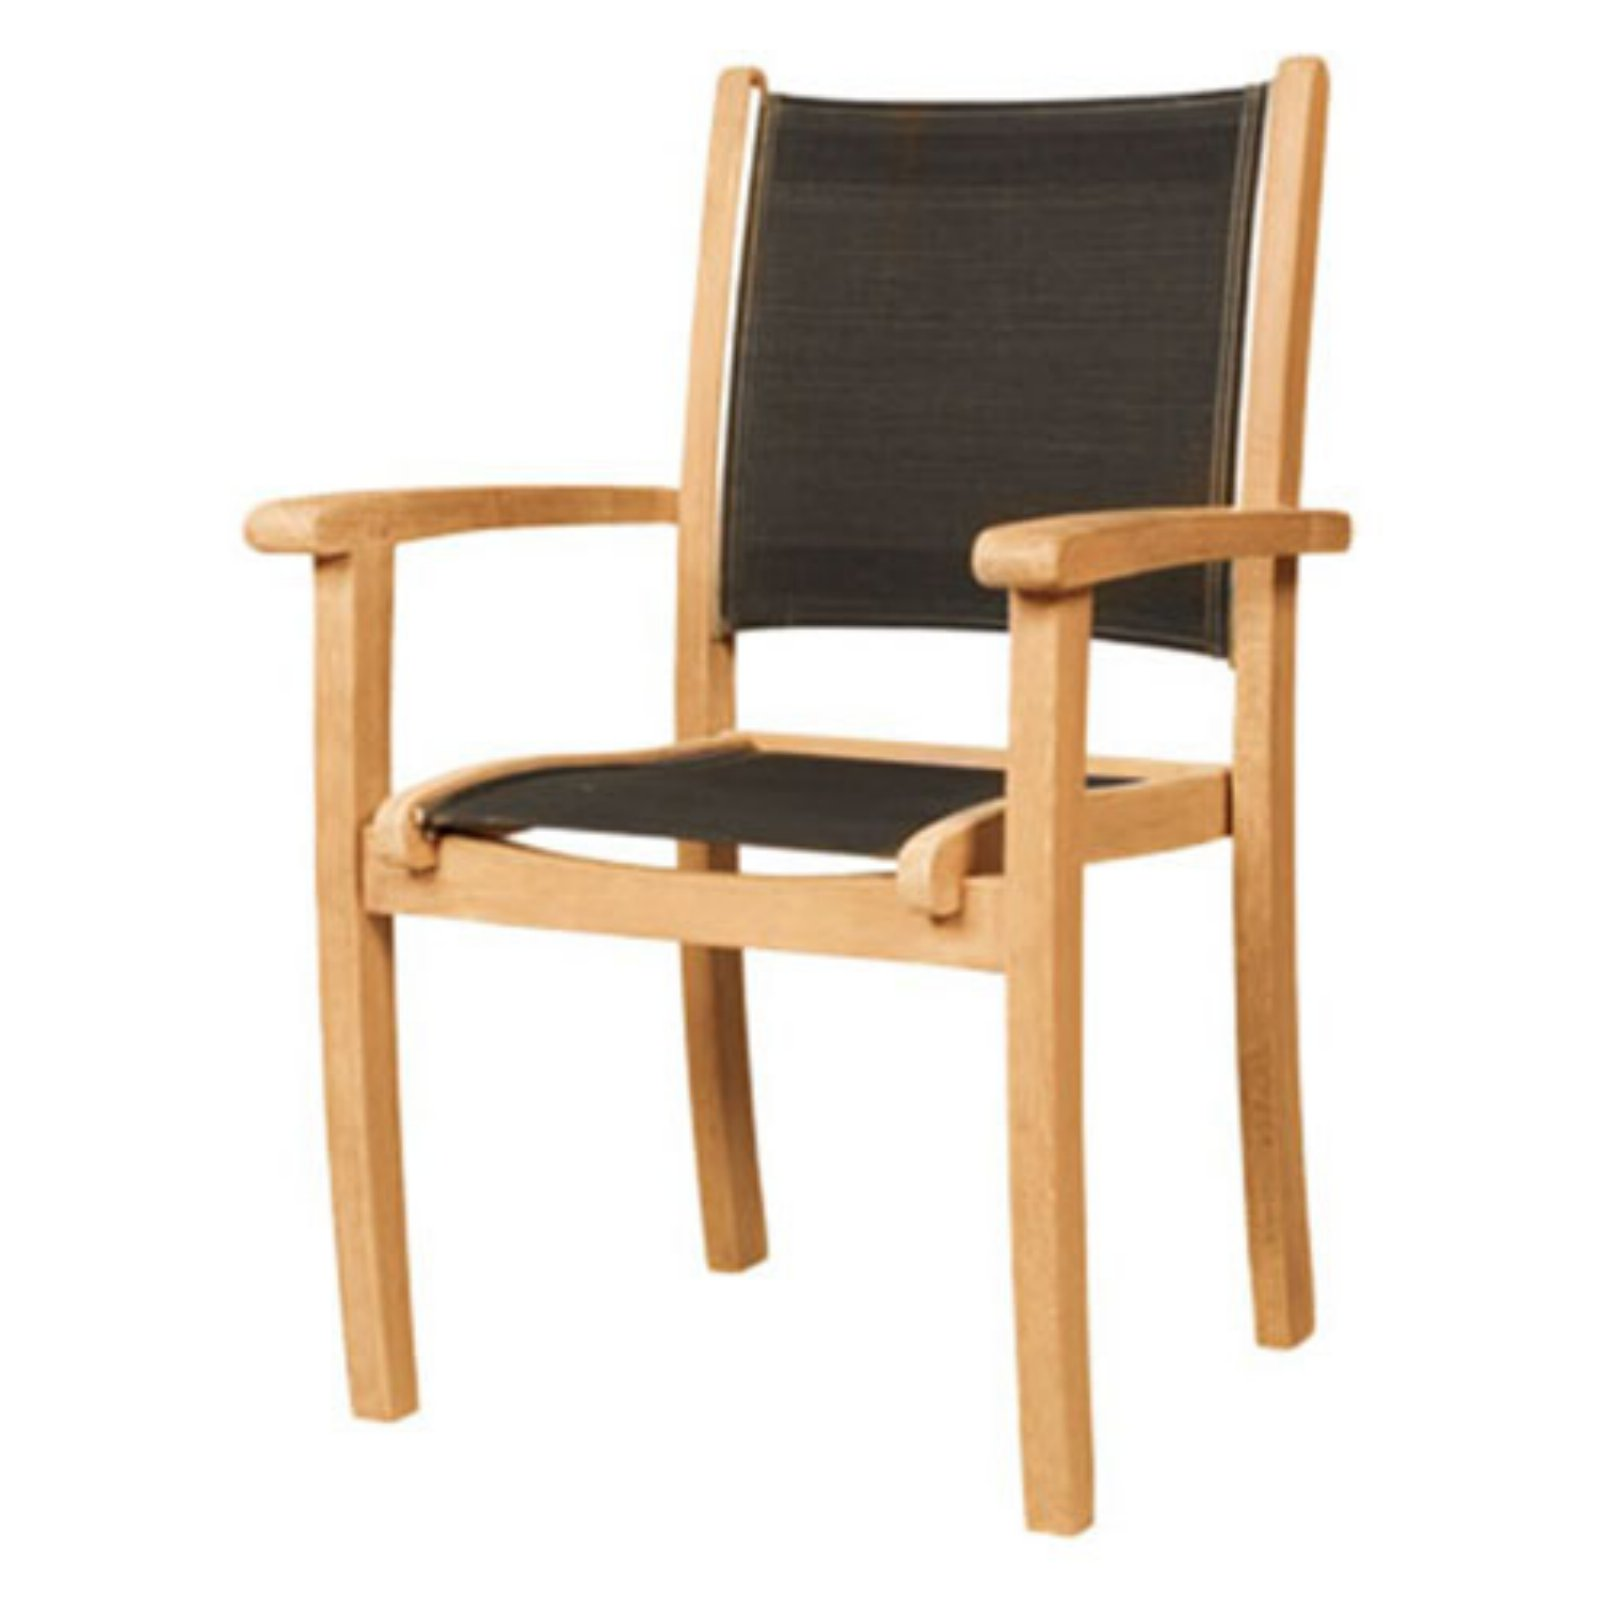 HiTeak Furniture Black Pearl Stacking Chair - Set of 4